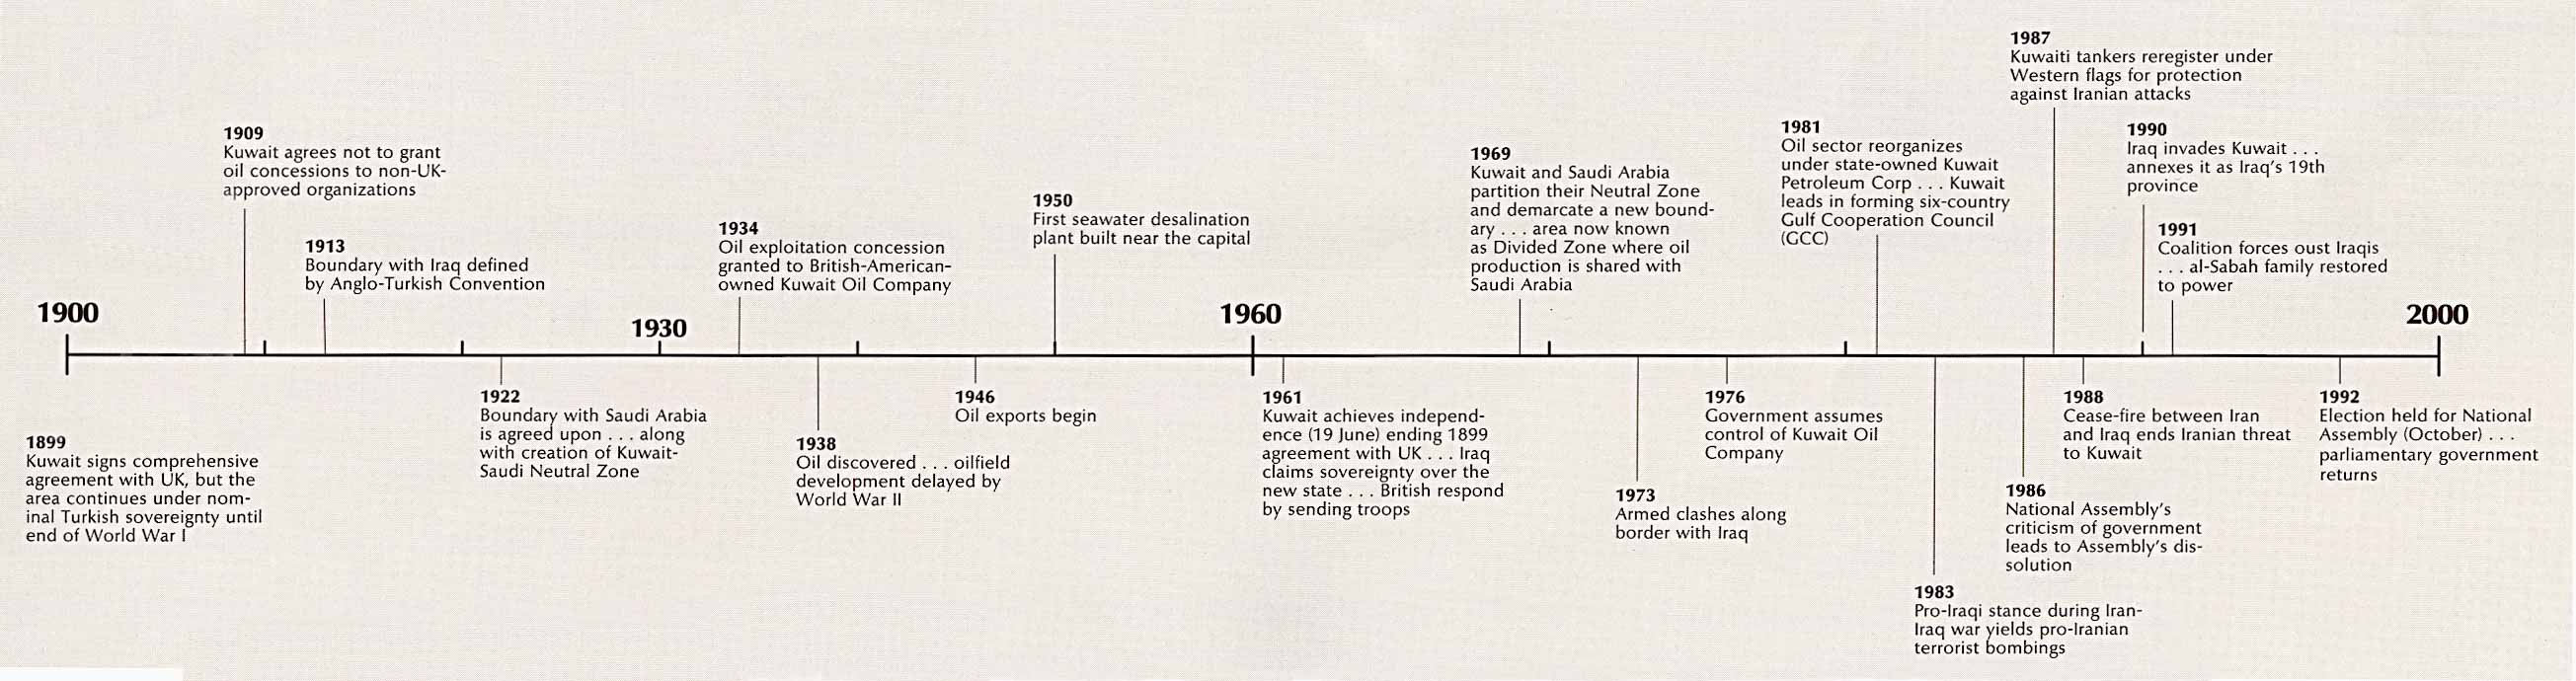 Map of Kuwait Time Line (208k)